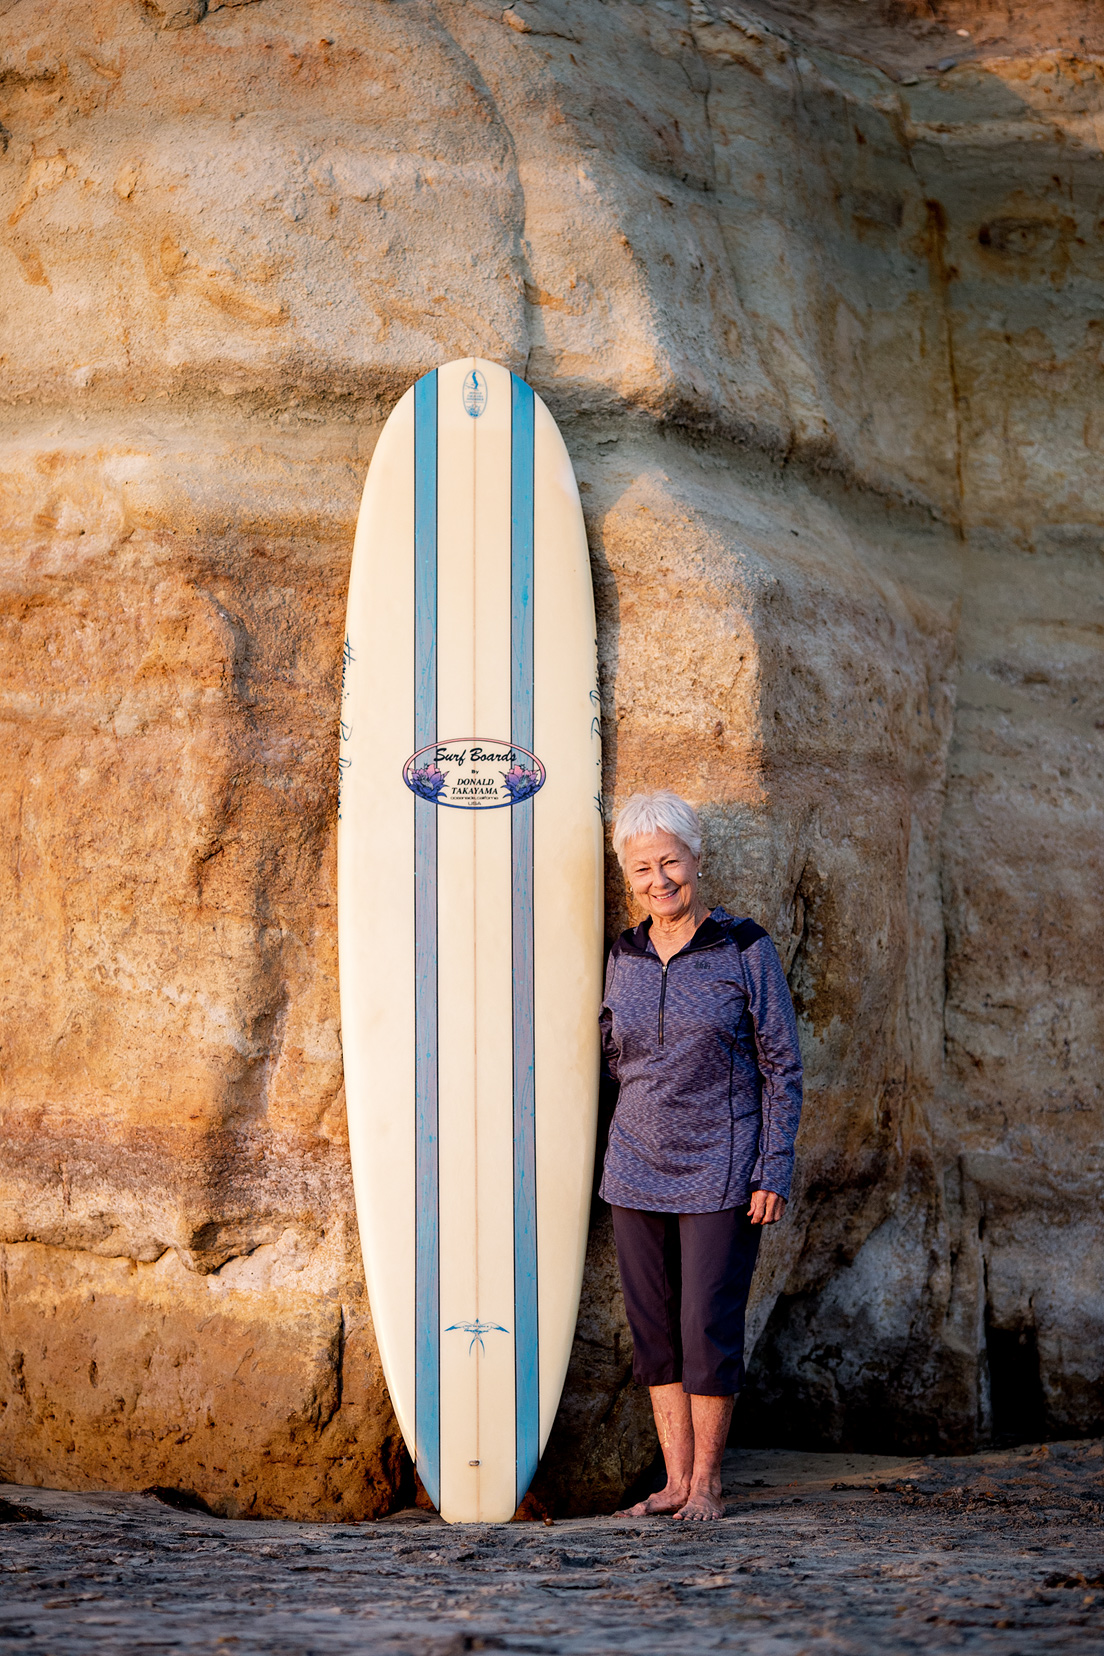 linda-benson-with-donald-takayama-surfboard-chris-grant-photo